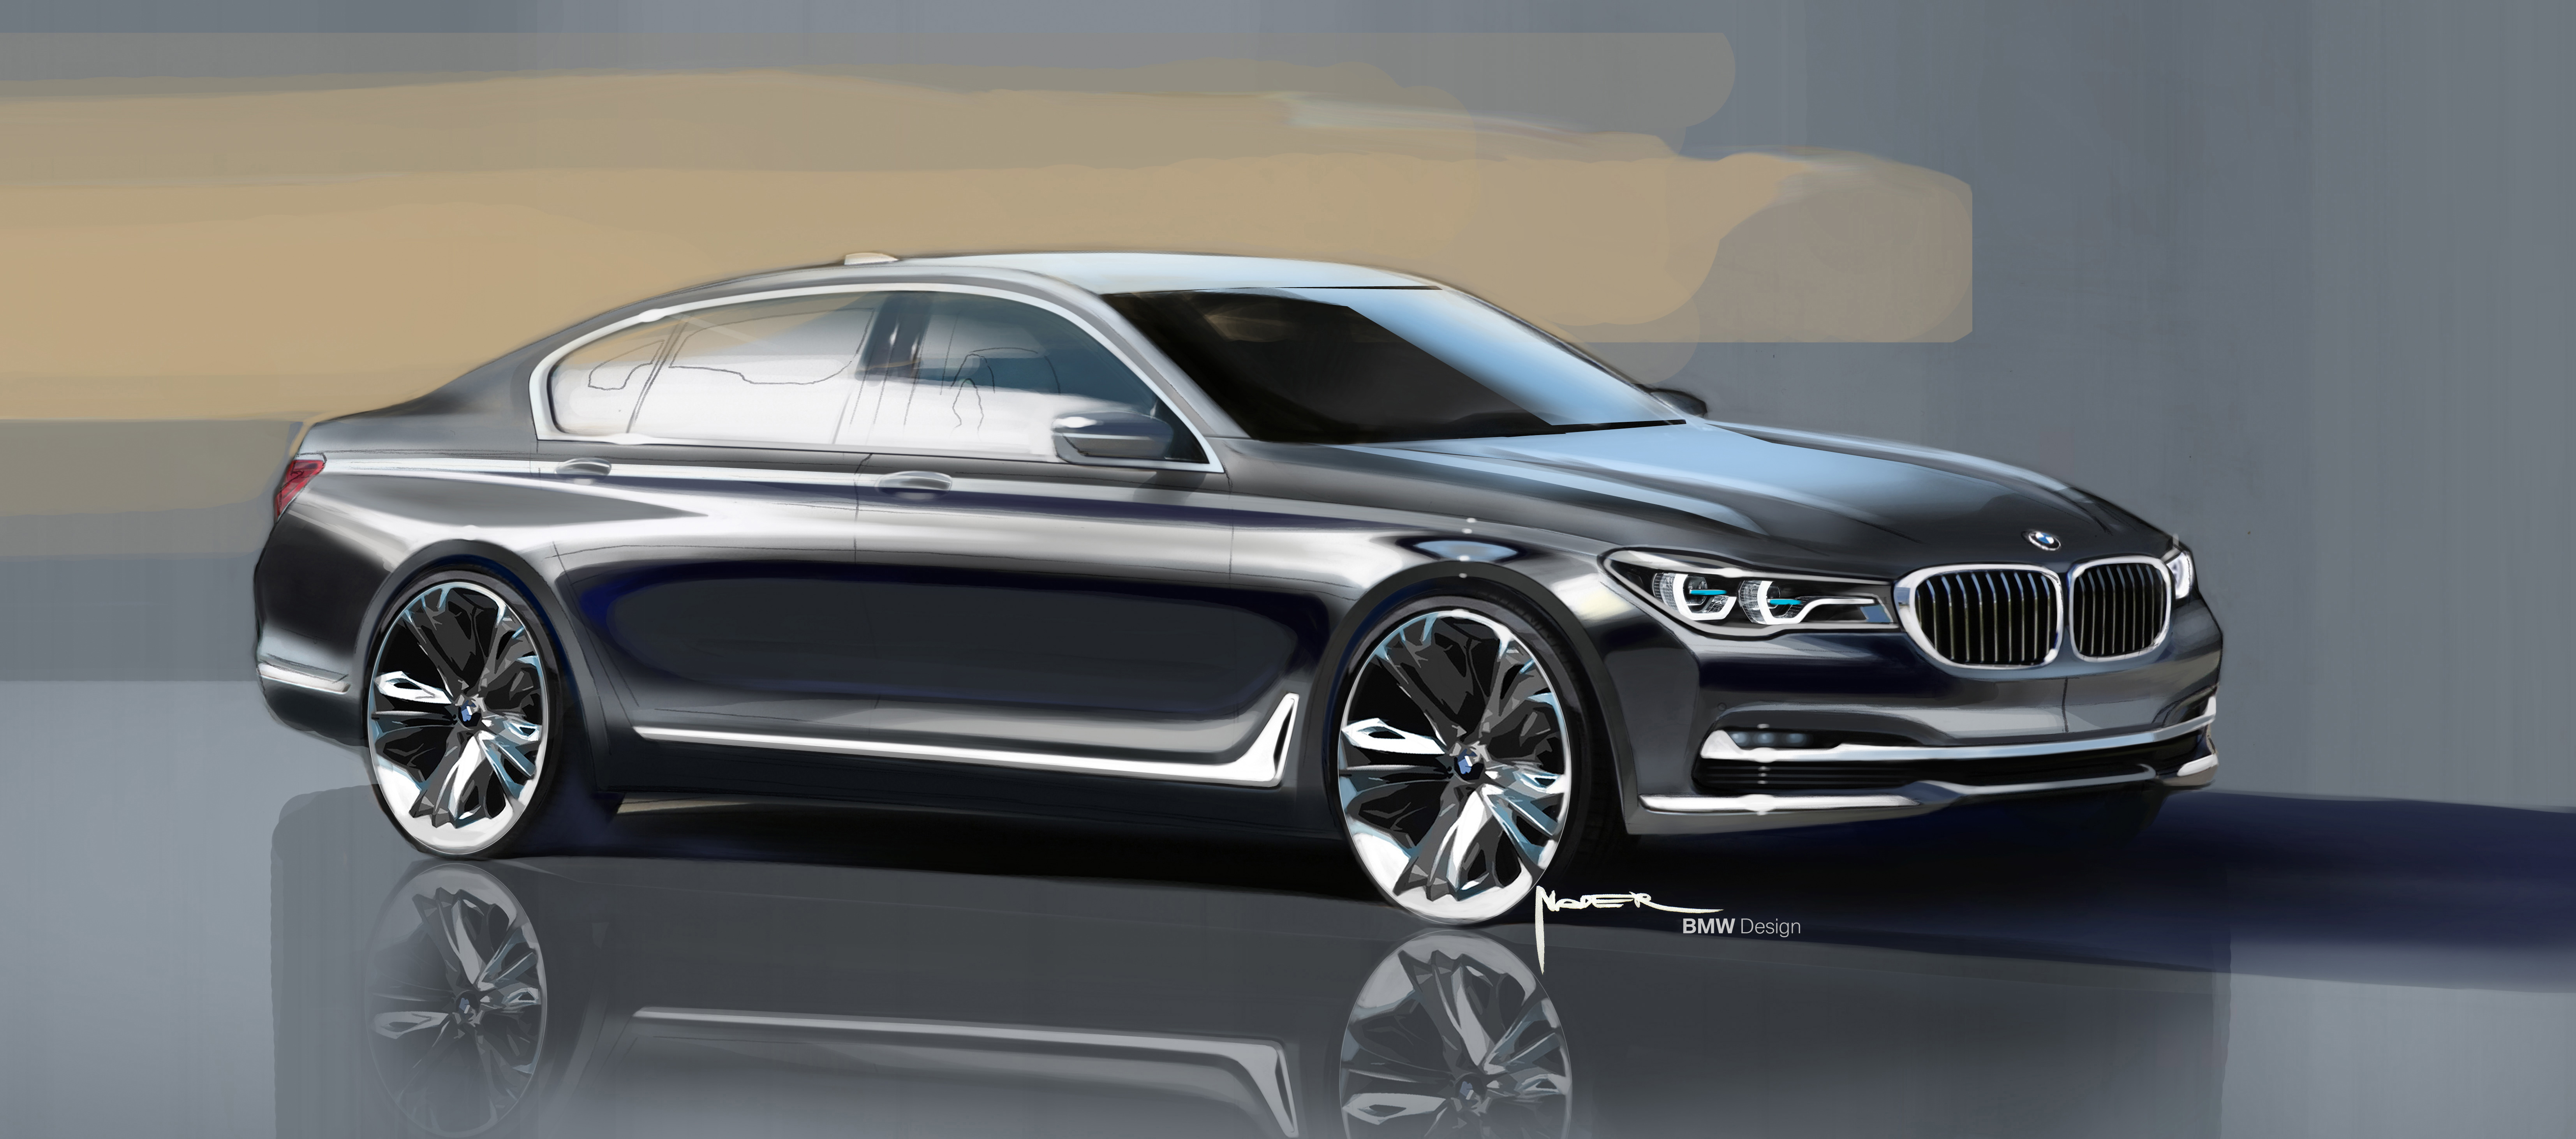 2016 Bmw 7 Series Wallpapers And Videos Want To Pull You Into A World Of Luxury Autoevolution